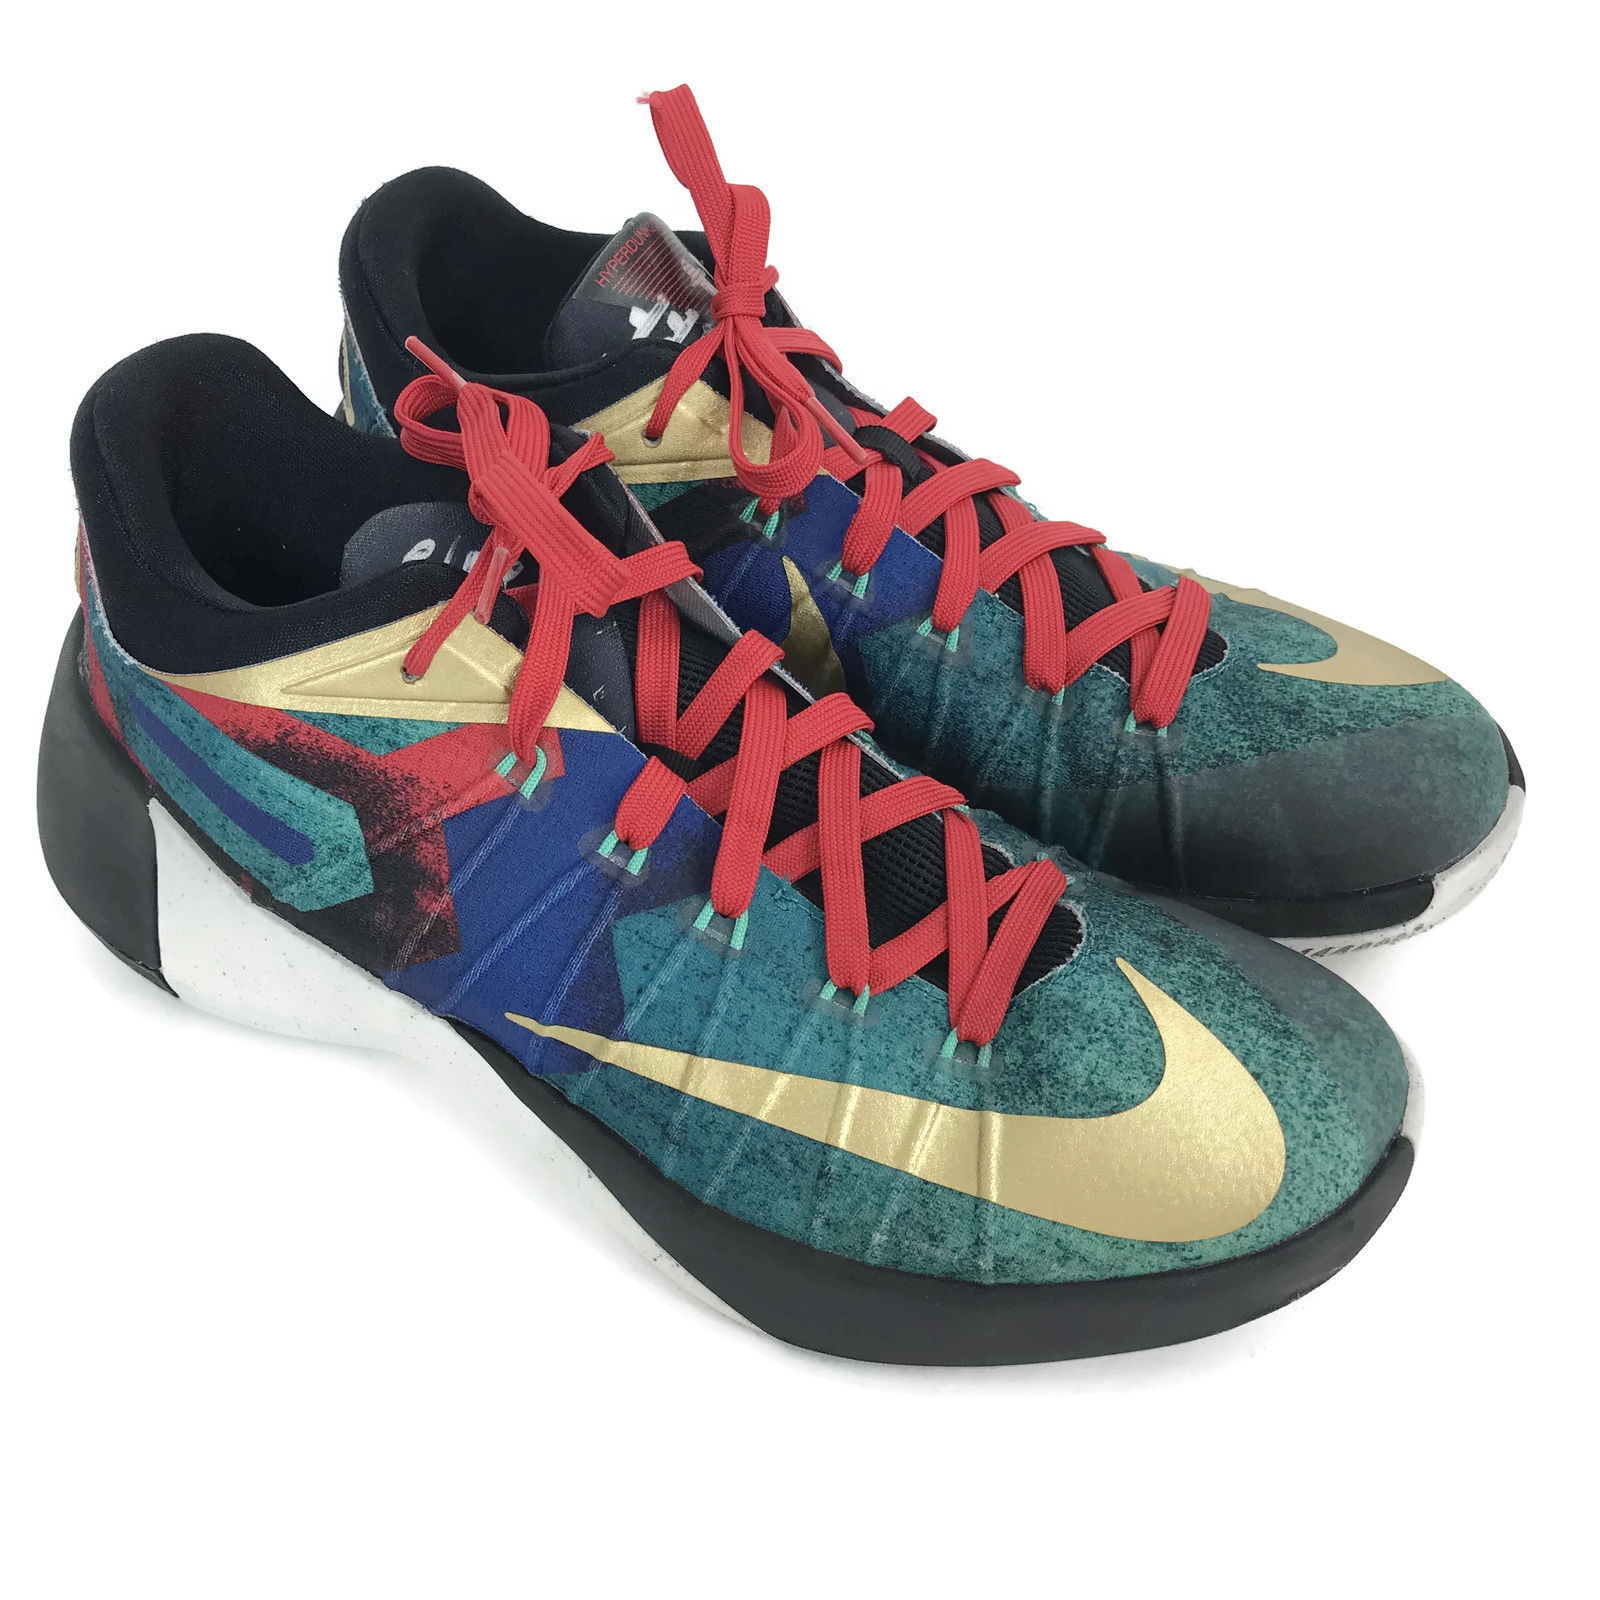 best service 2b51c e59f7 S l1600. S l1600. Nike Hyperdunk 2015 Low LMTD City Pack Beijing Men s  Basketball Shoes Size 10  Nike ...